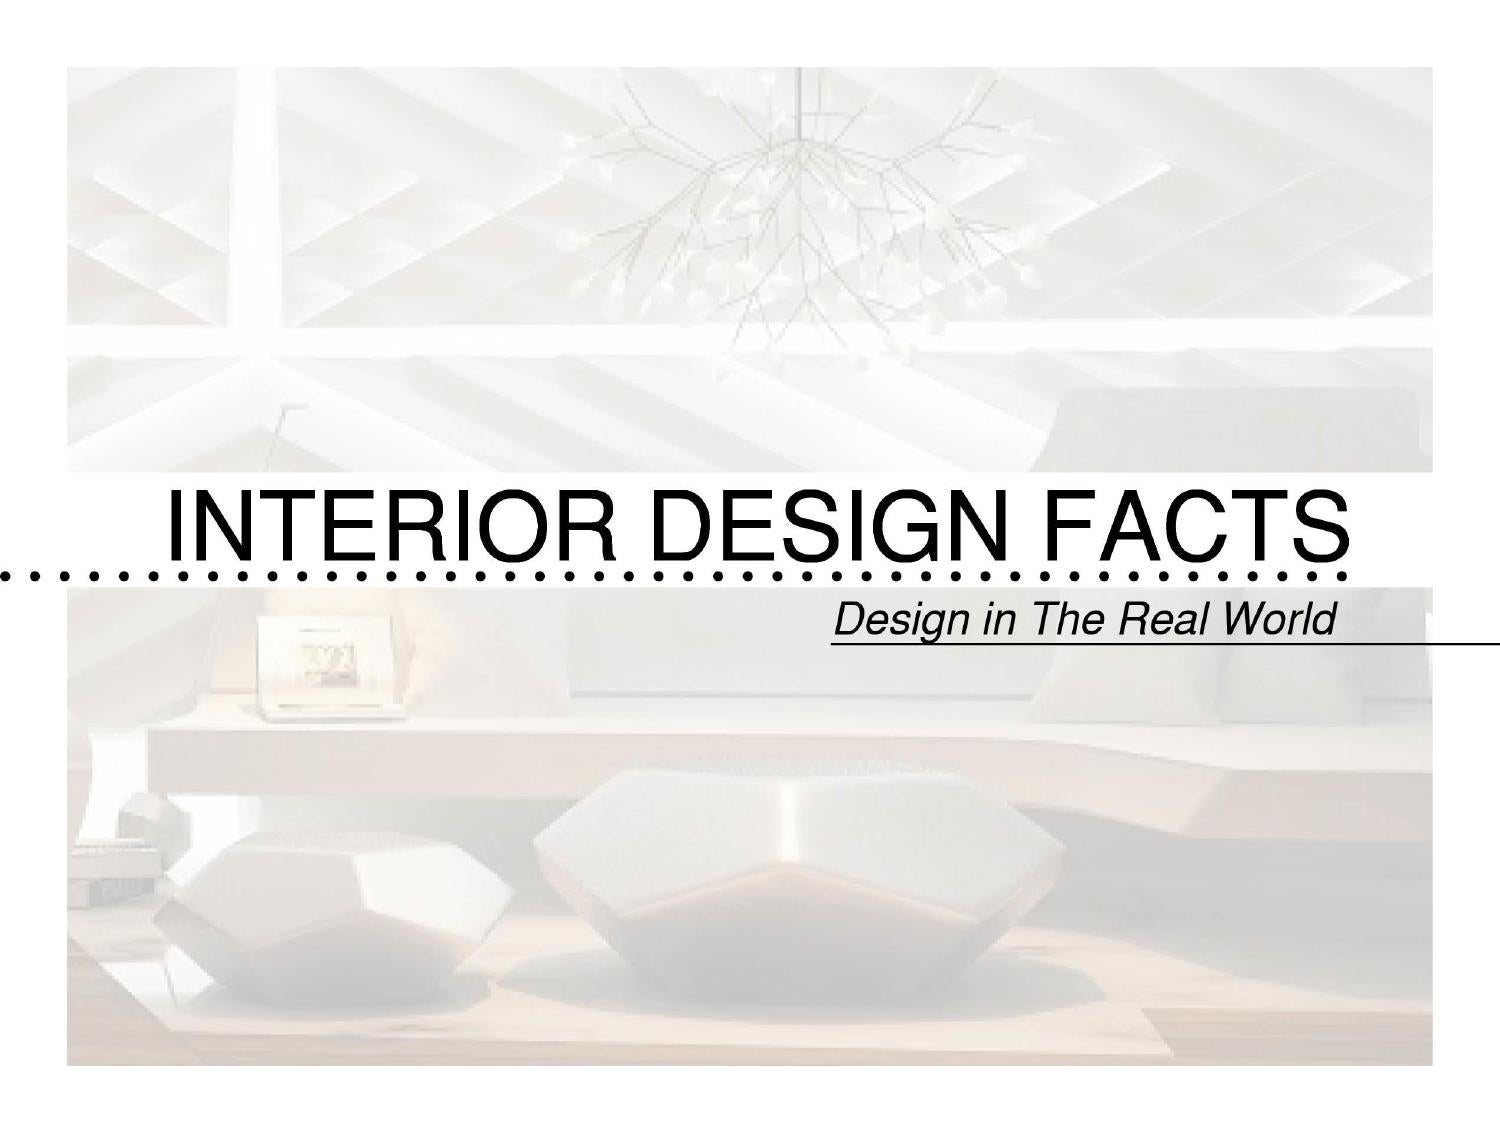 Interior design facts by natascha bolliger issuu for Interior design facts